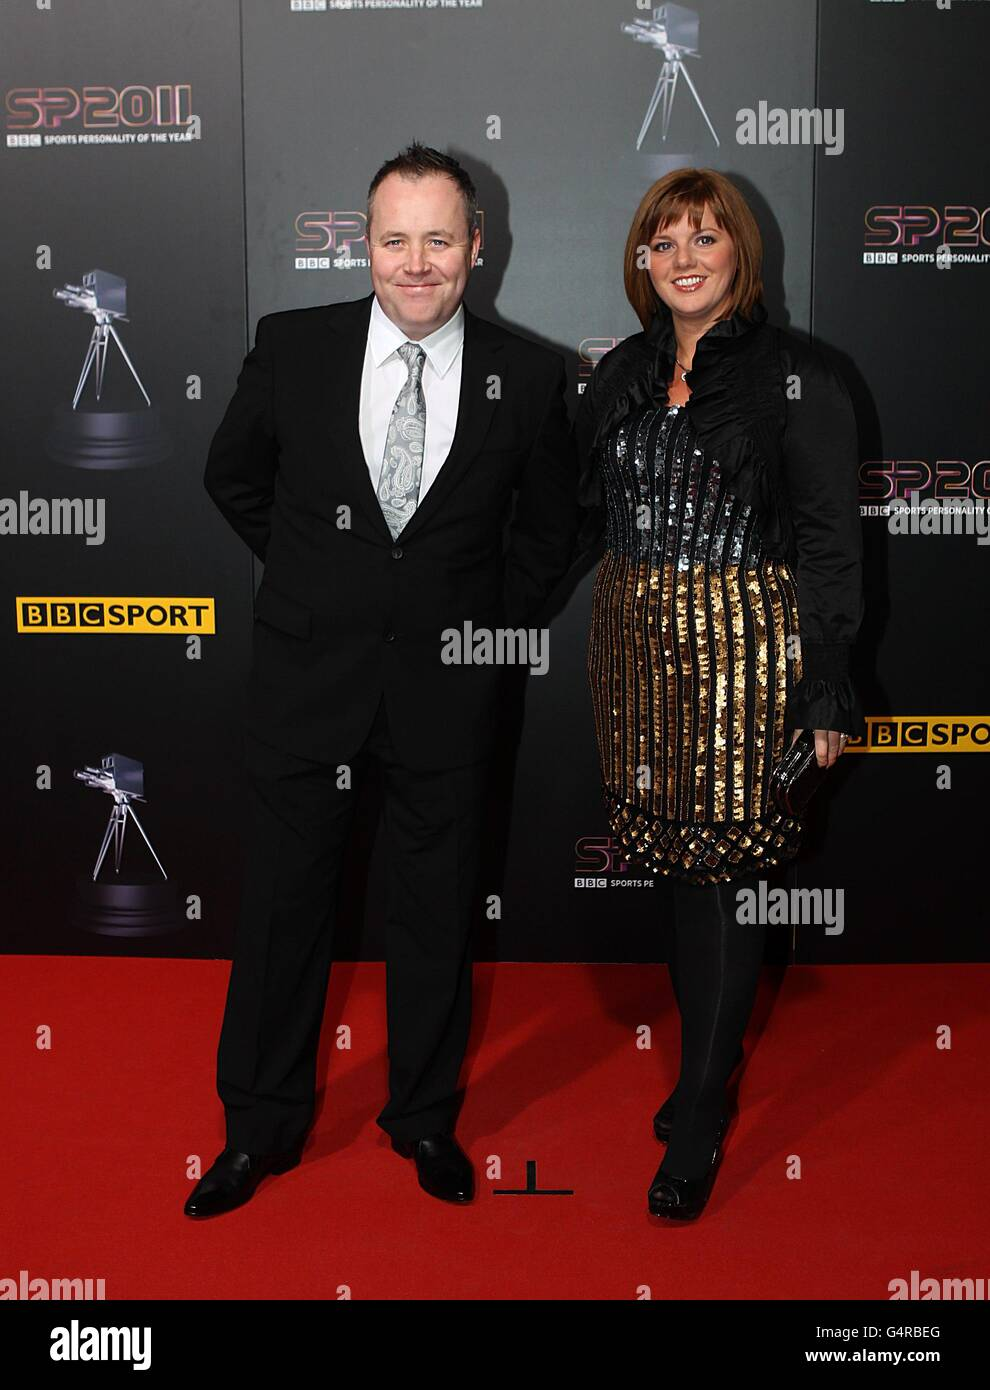 John Higgins With Wife Denise High Resolution Stock Photography And Images Alamy